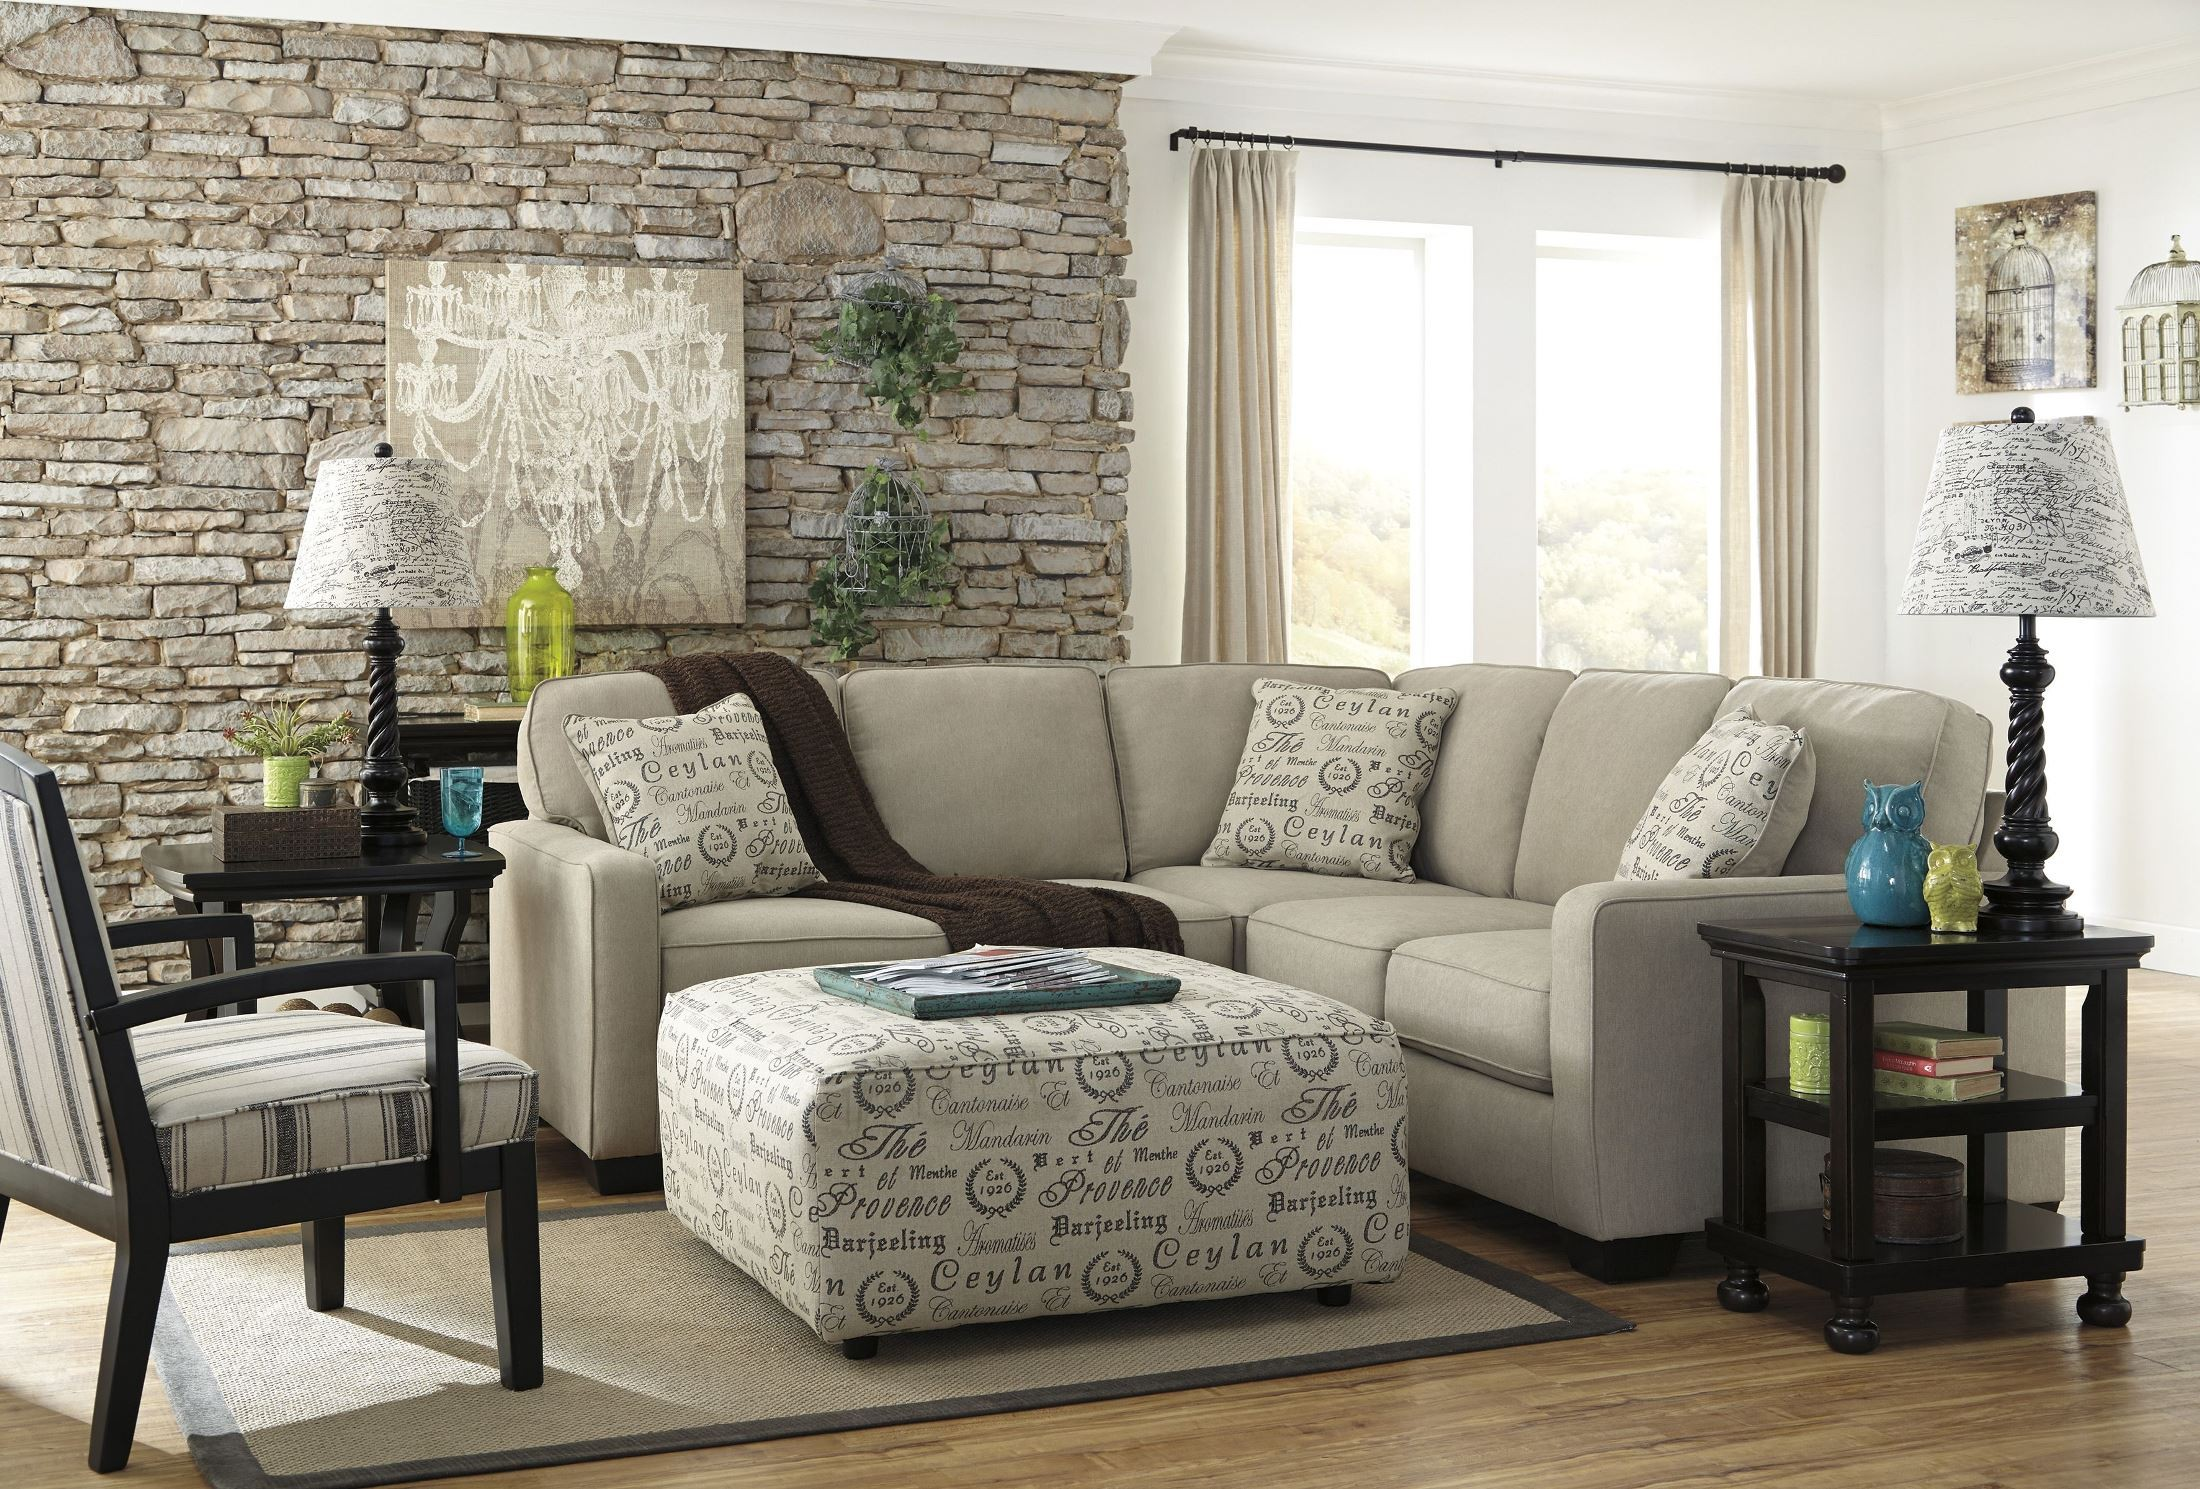 ashley alenya quartz sofa reviews pull out mattress laf sectional from coleman furniture